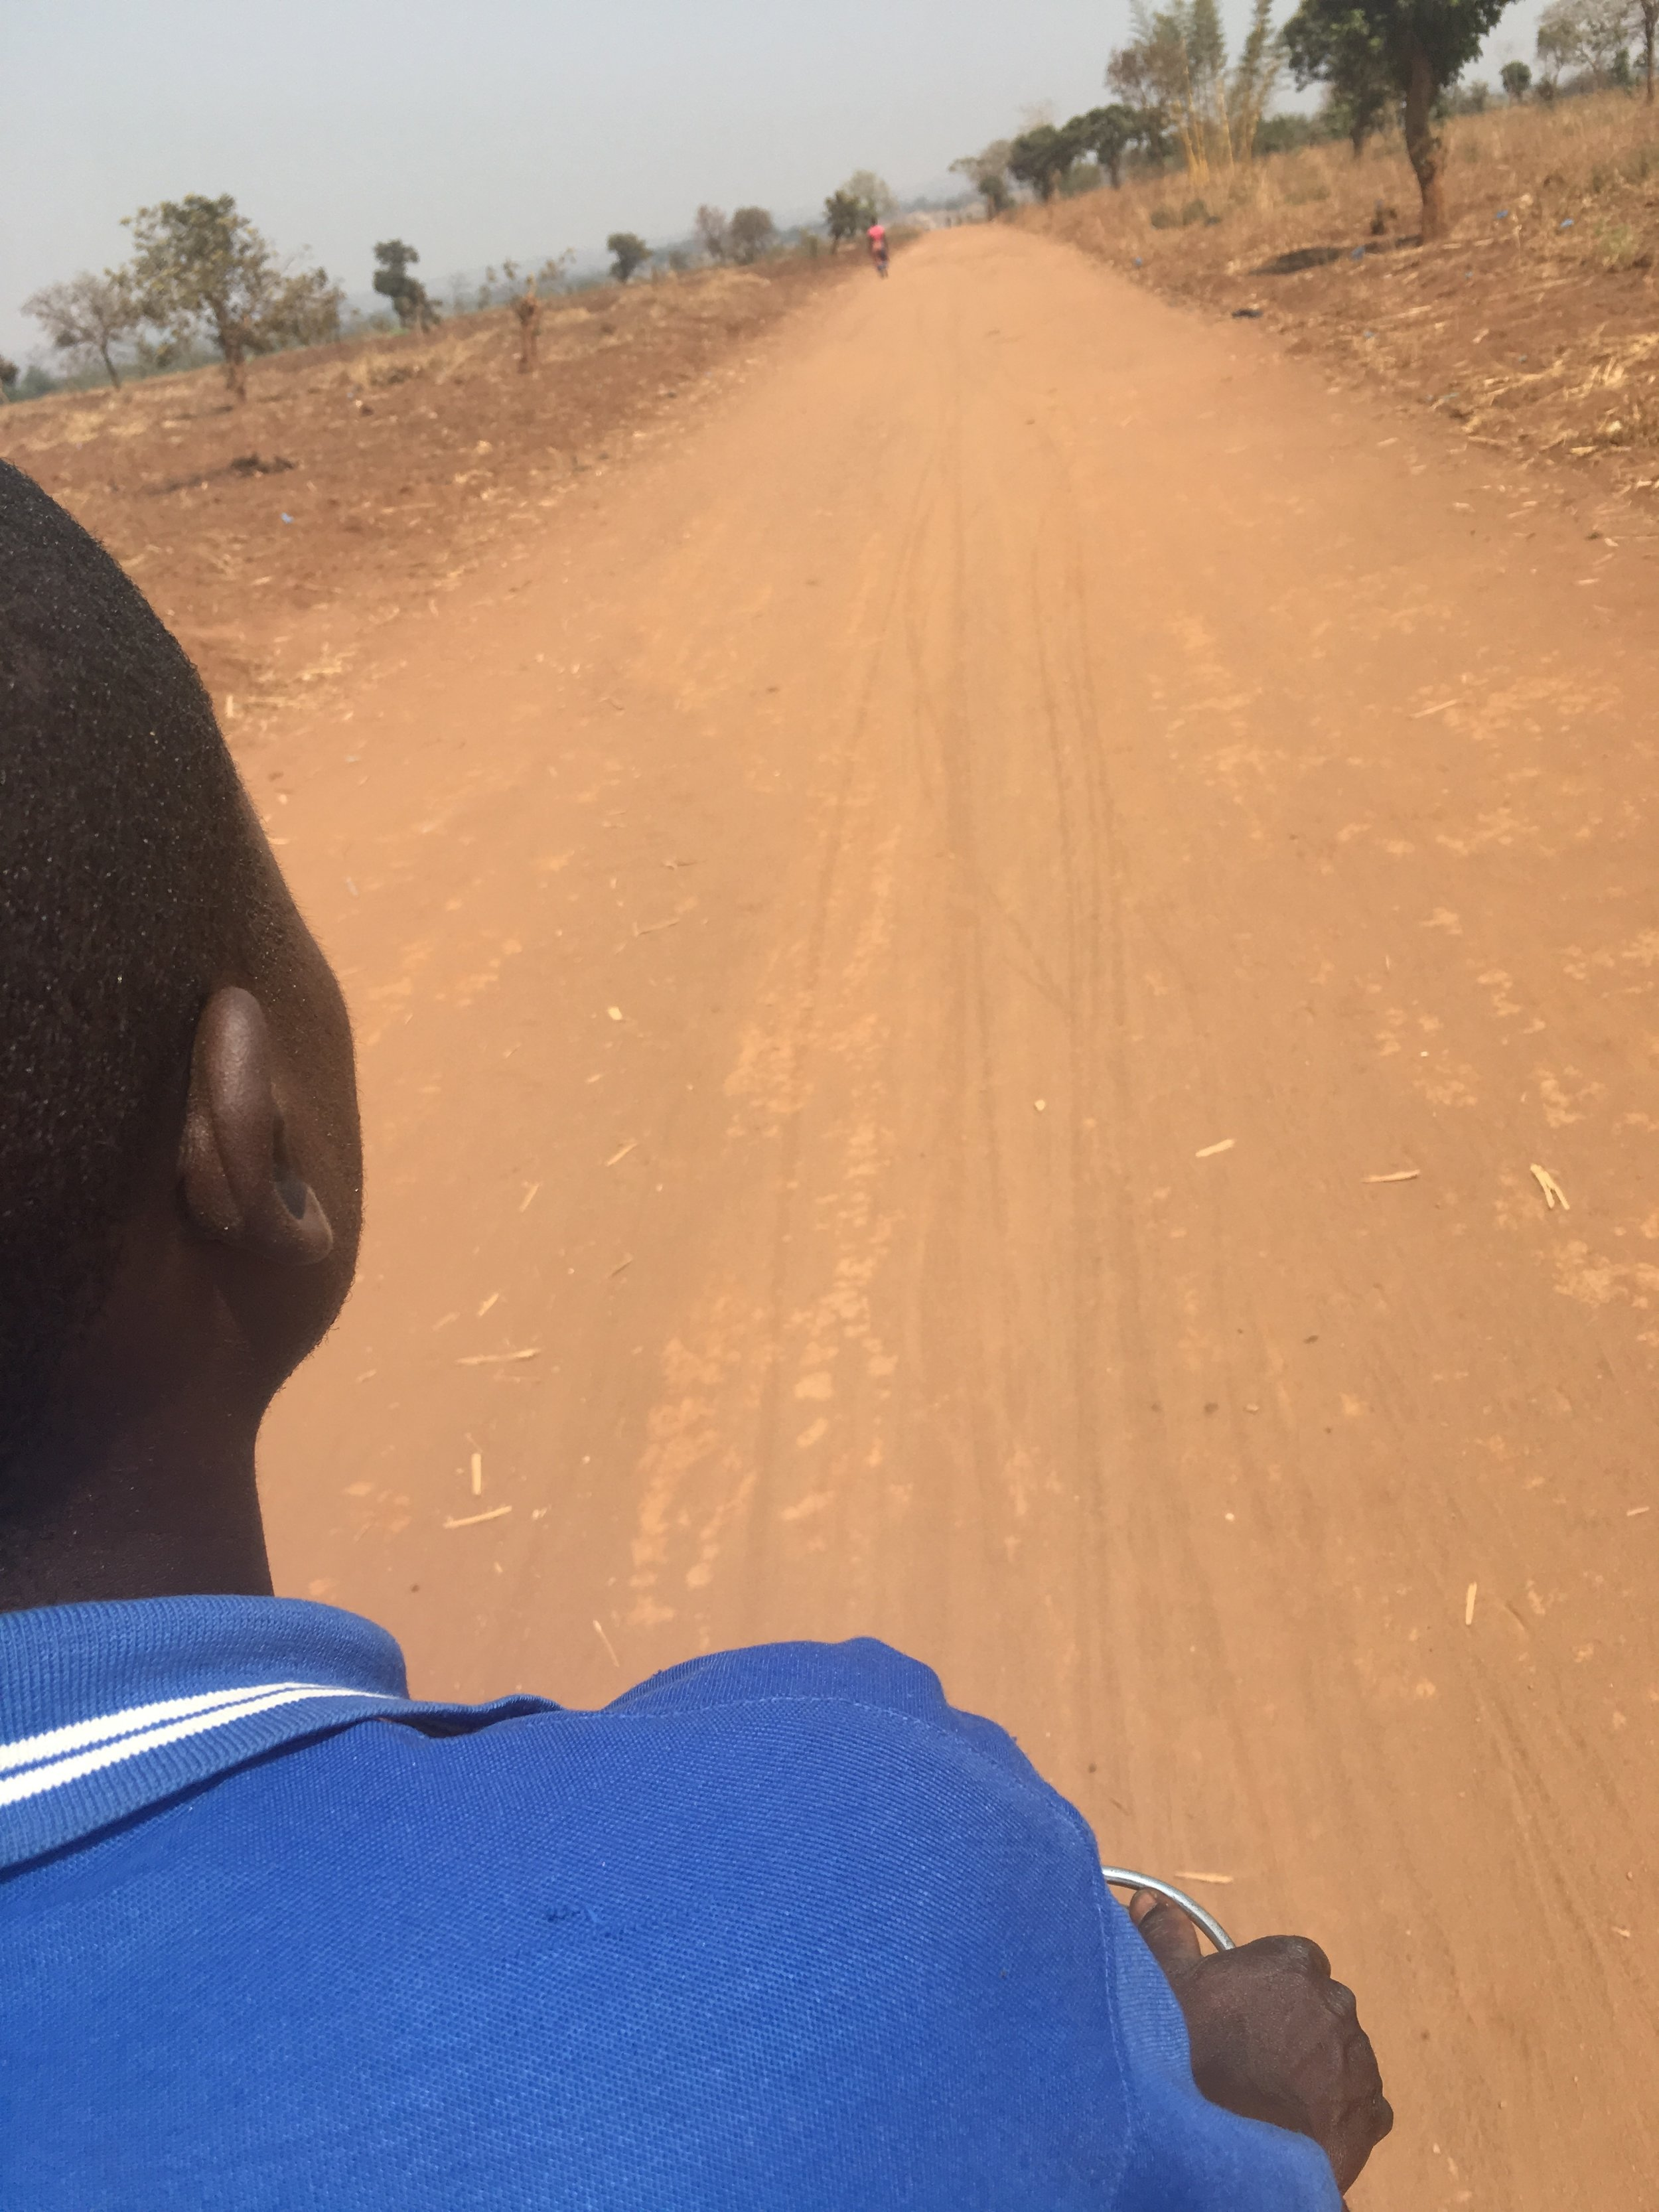 Riding on the back of a kabaza to our scholar's home!